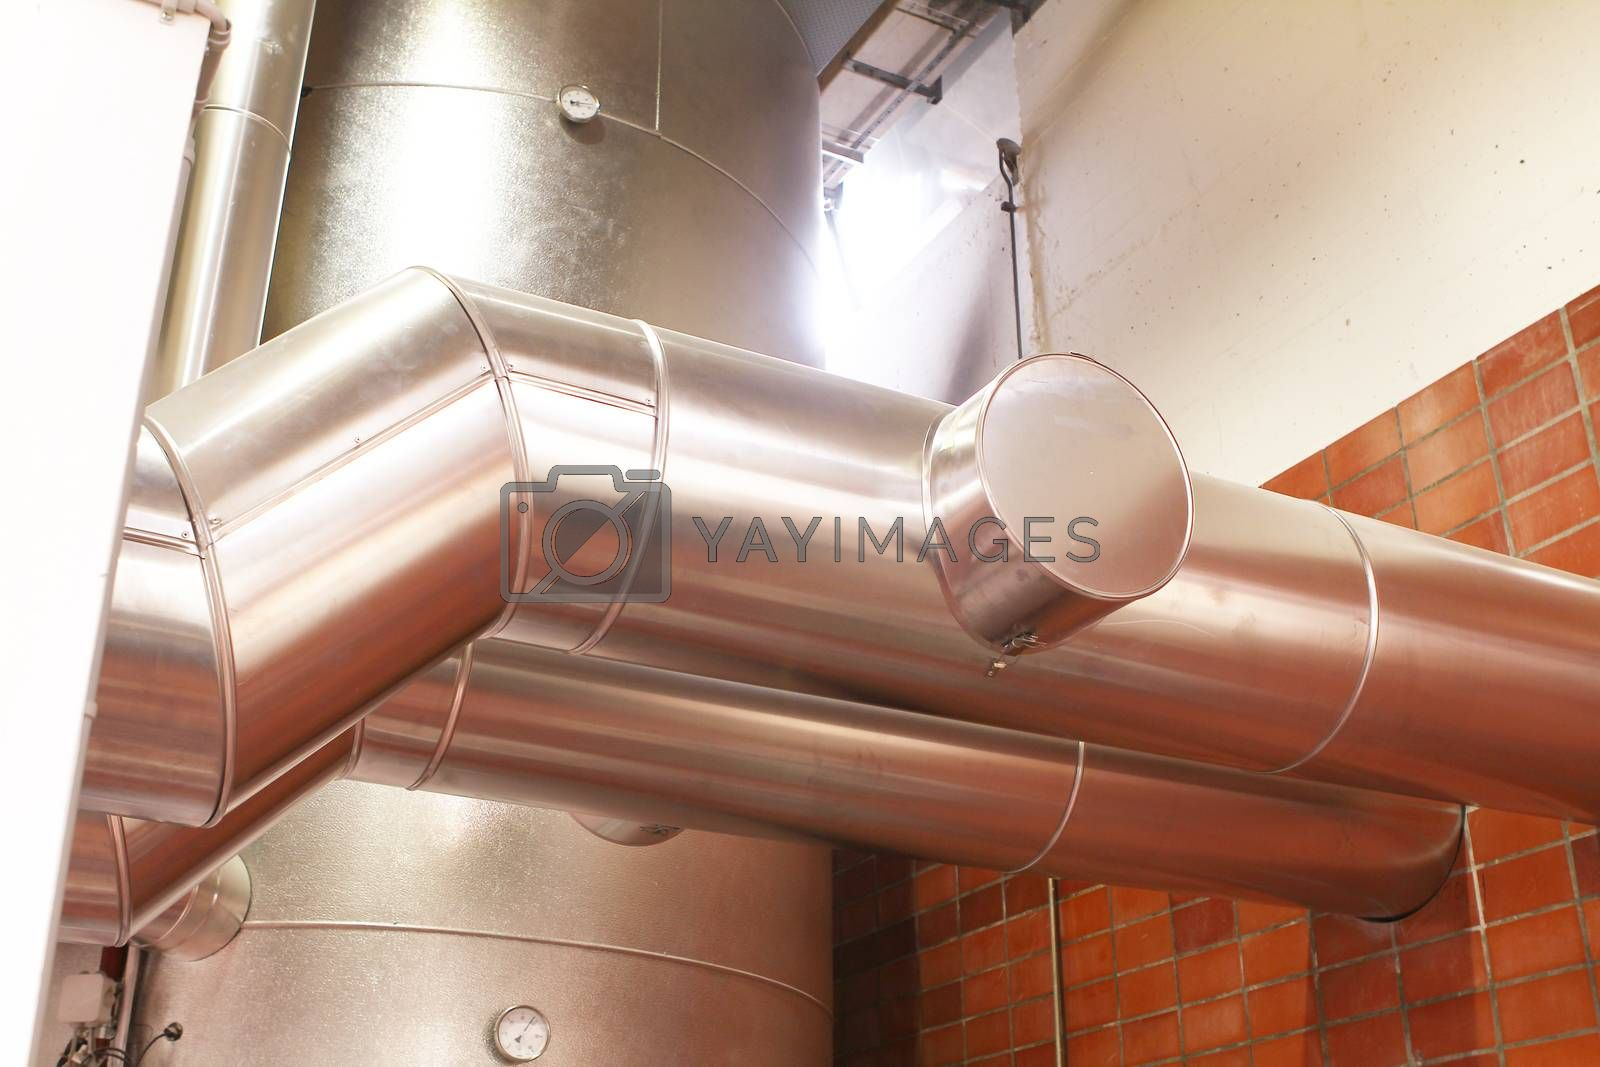 chrome pipes in heating and AC rooms in buildings of factories and hospital. With chrome color